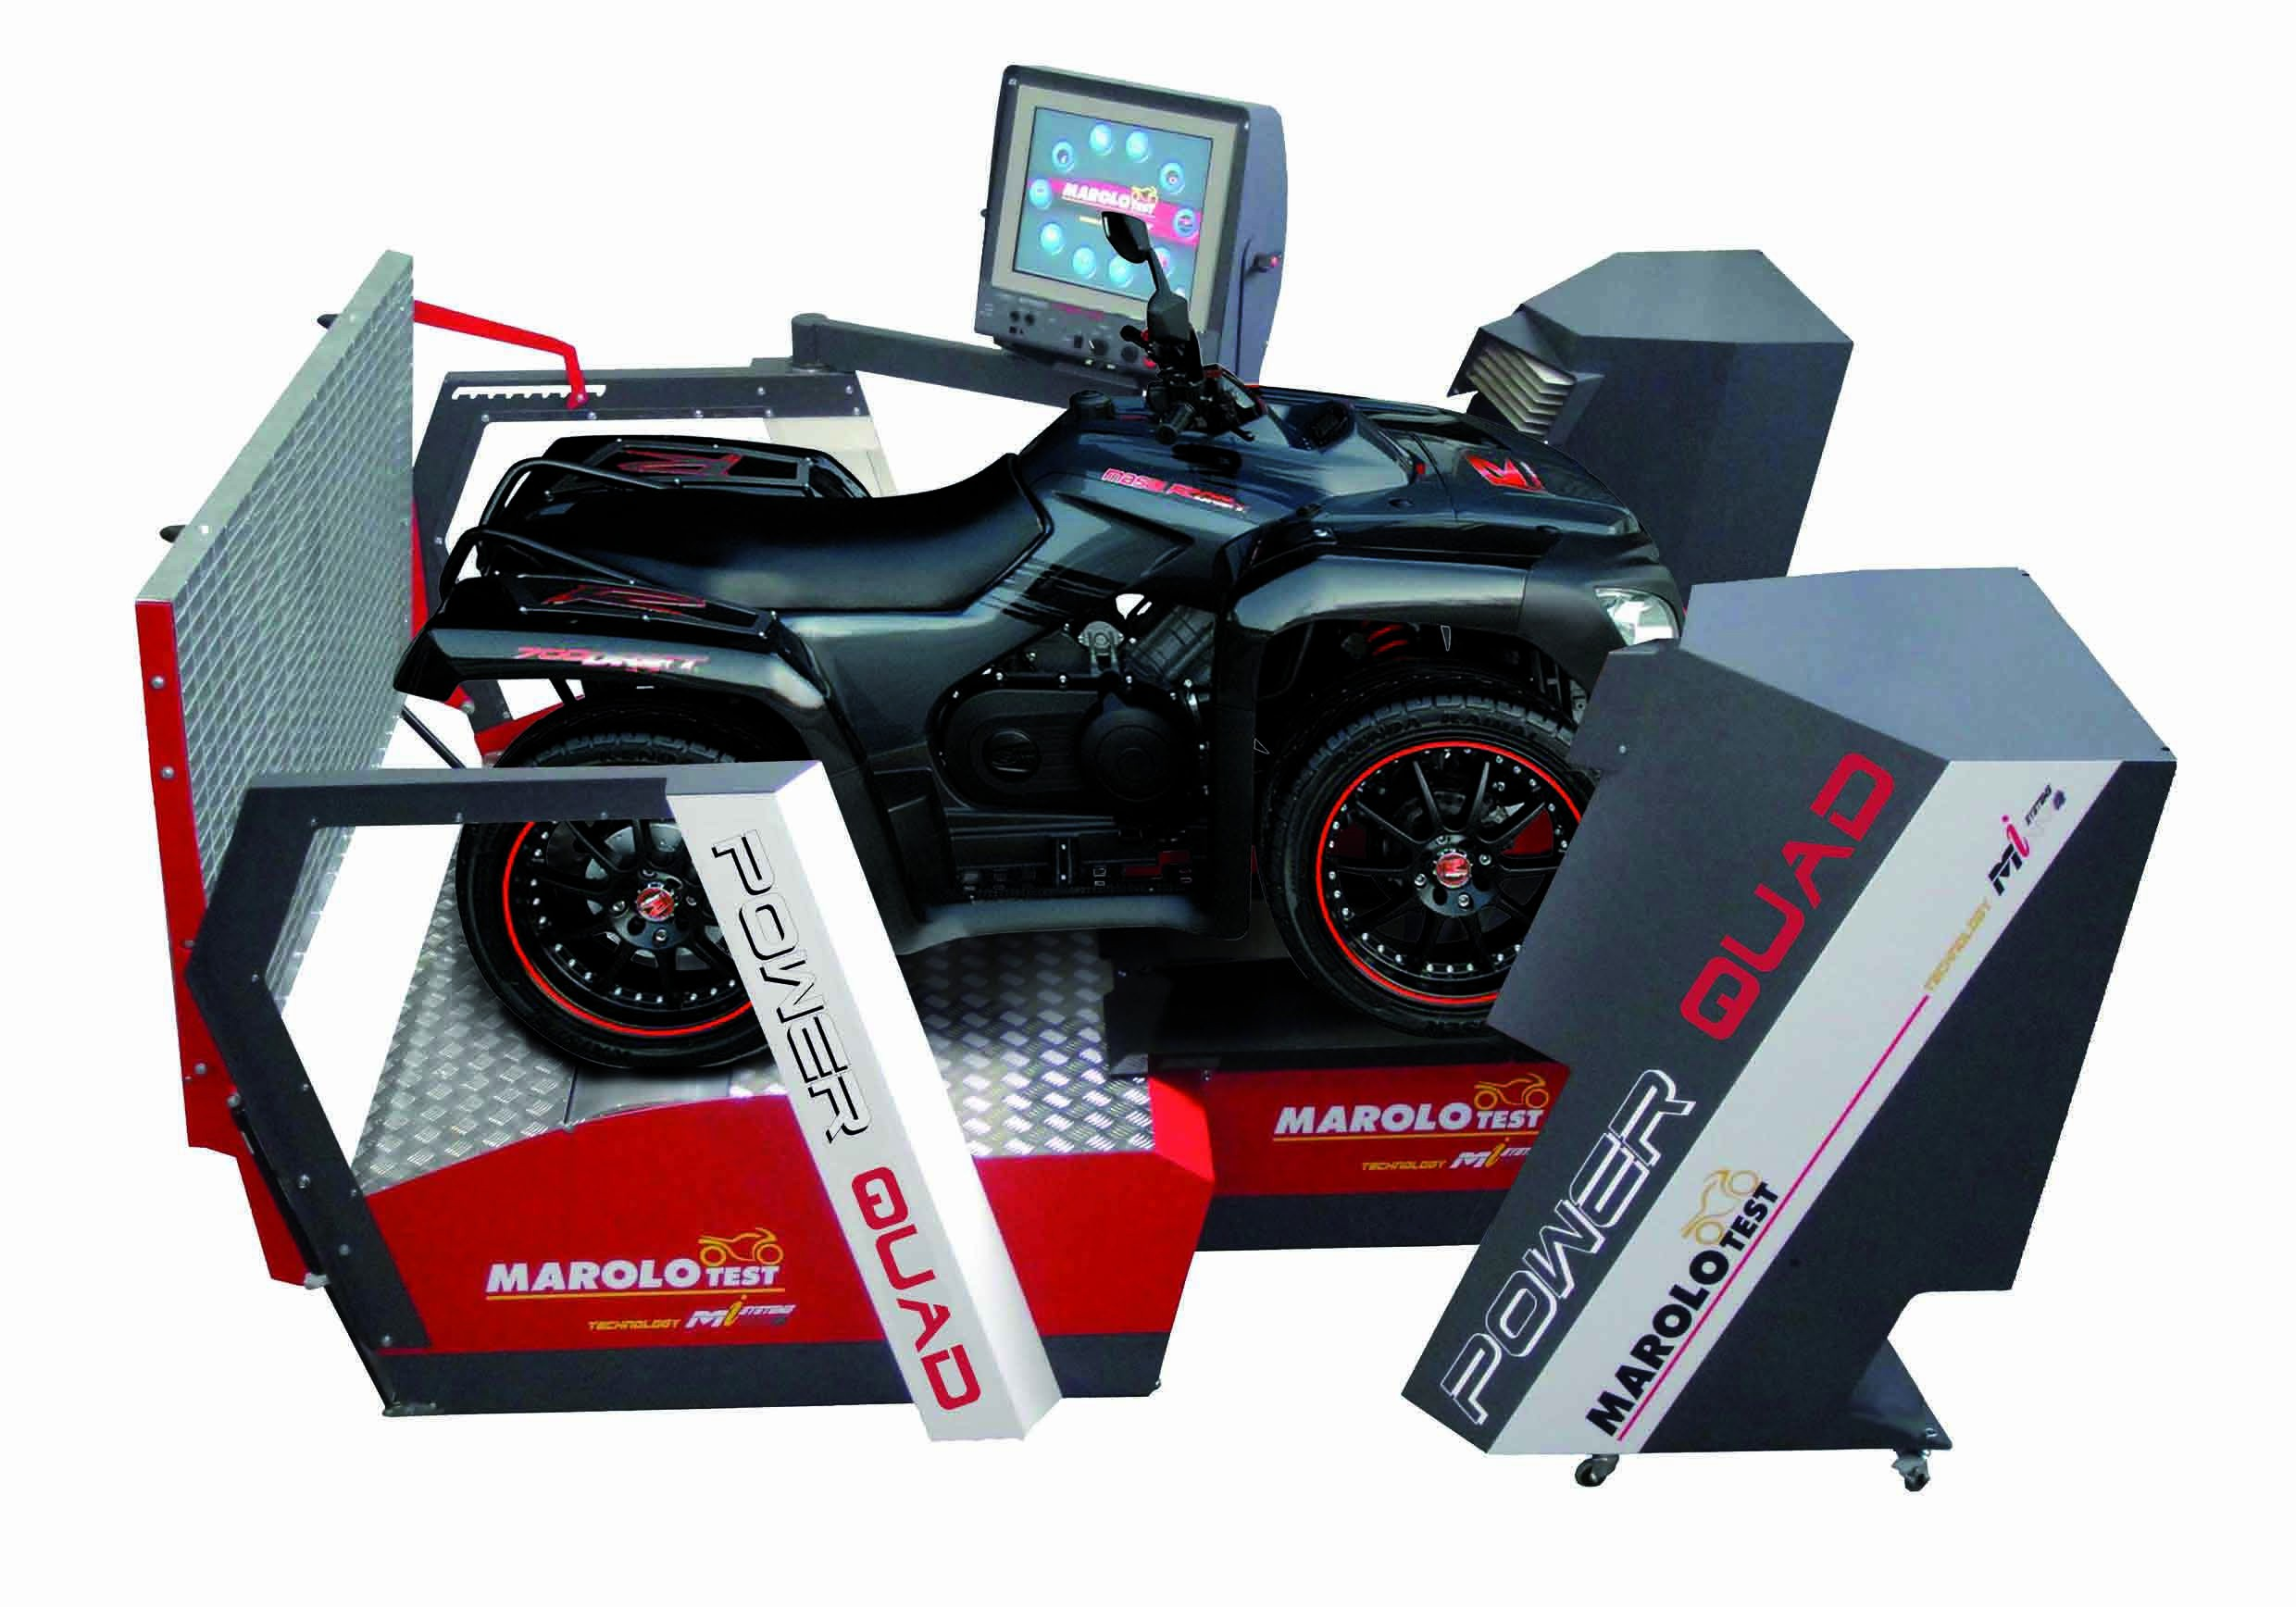 Marolotest Banc De Test Powerfull Motoquad Basic Bloc Roue